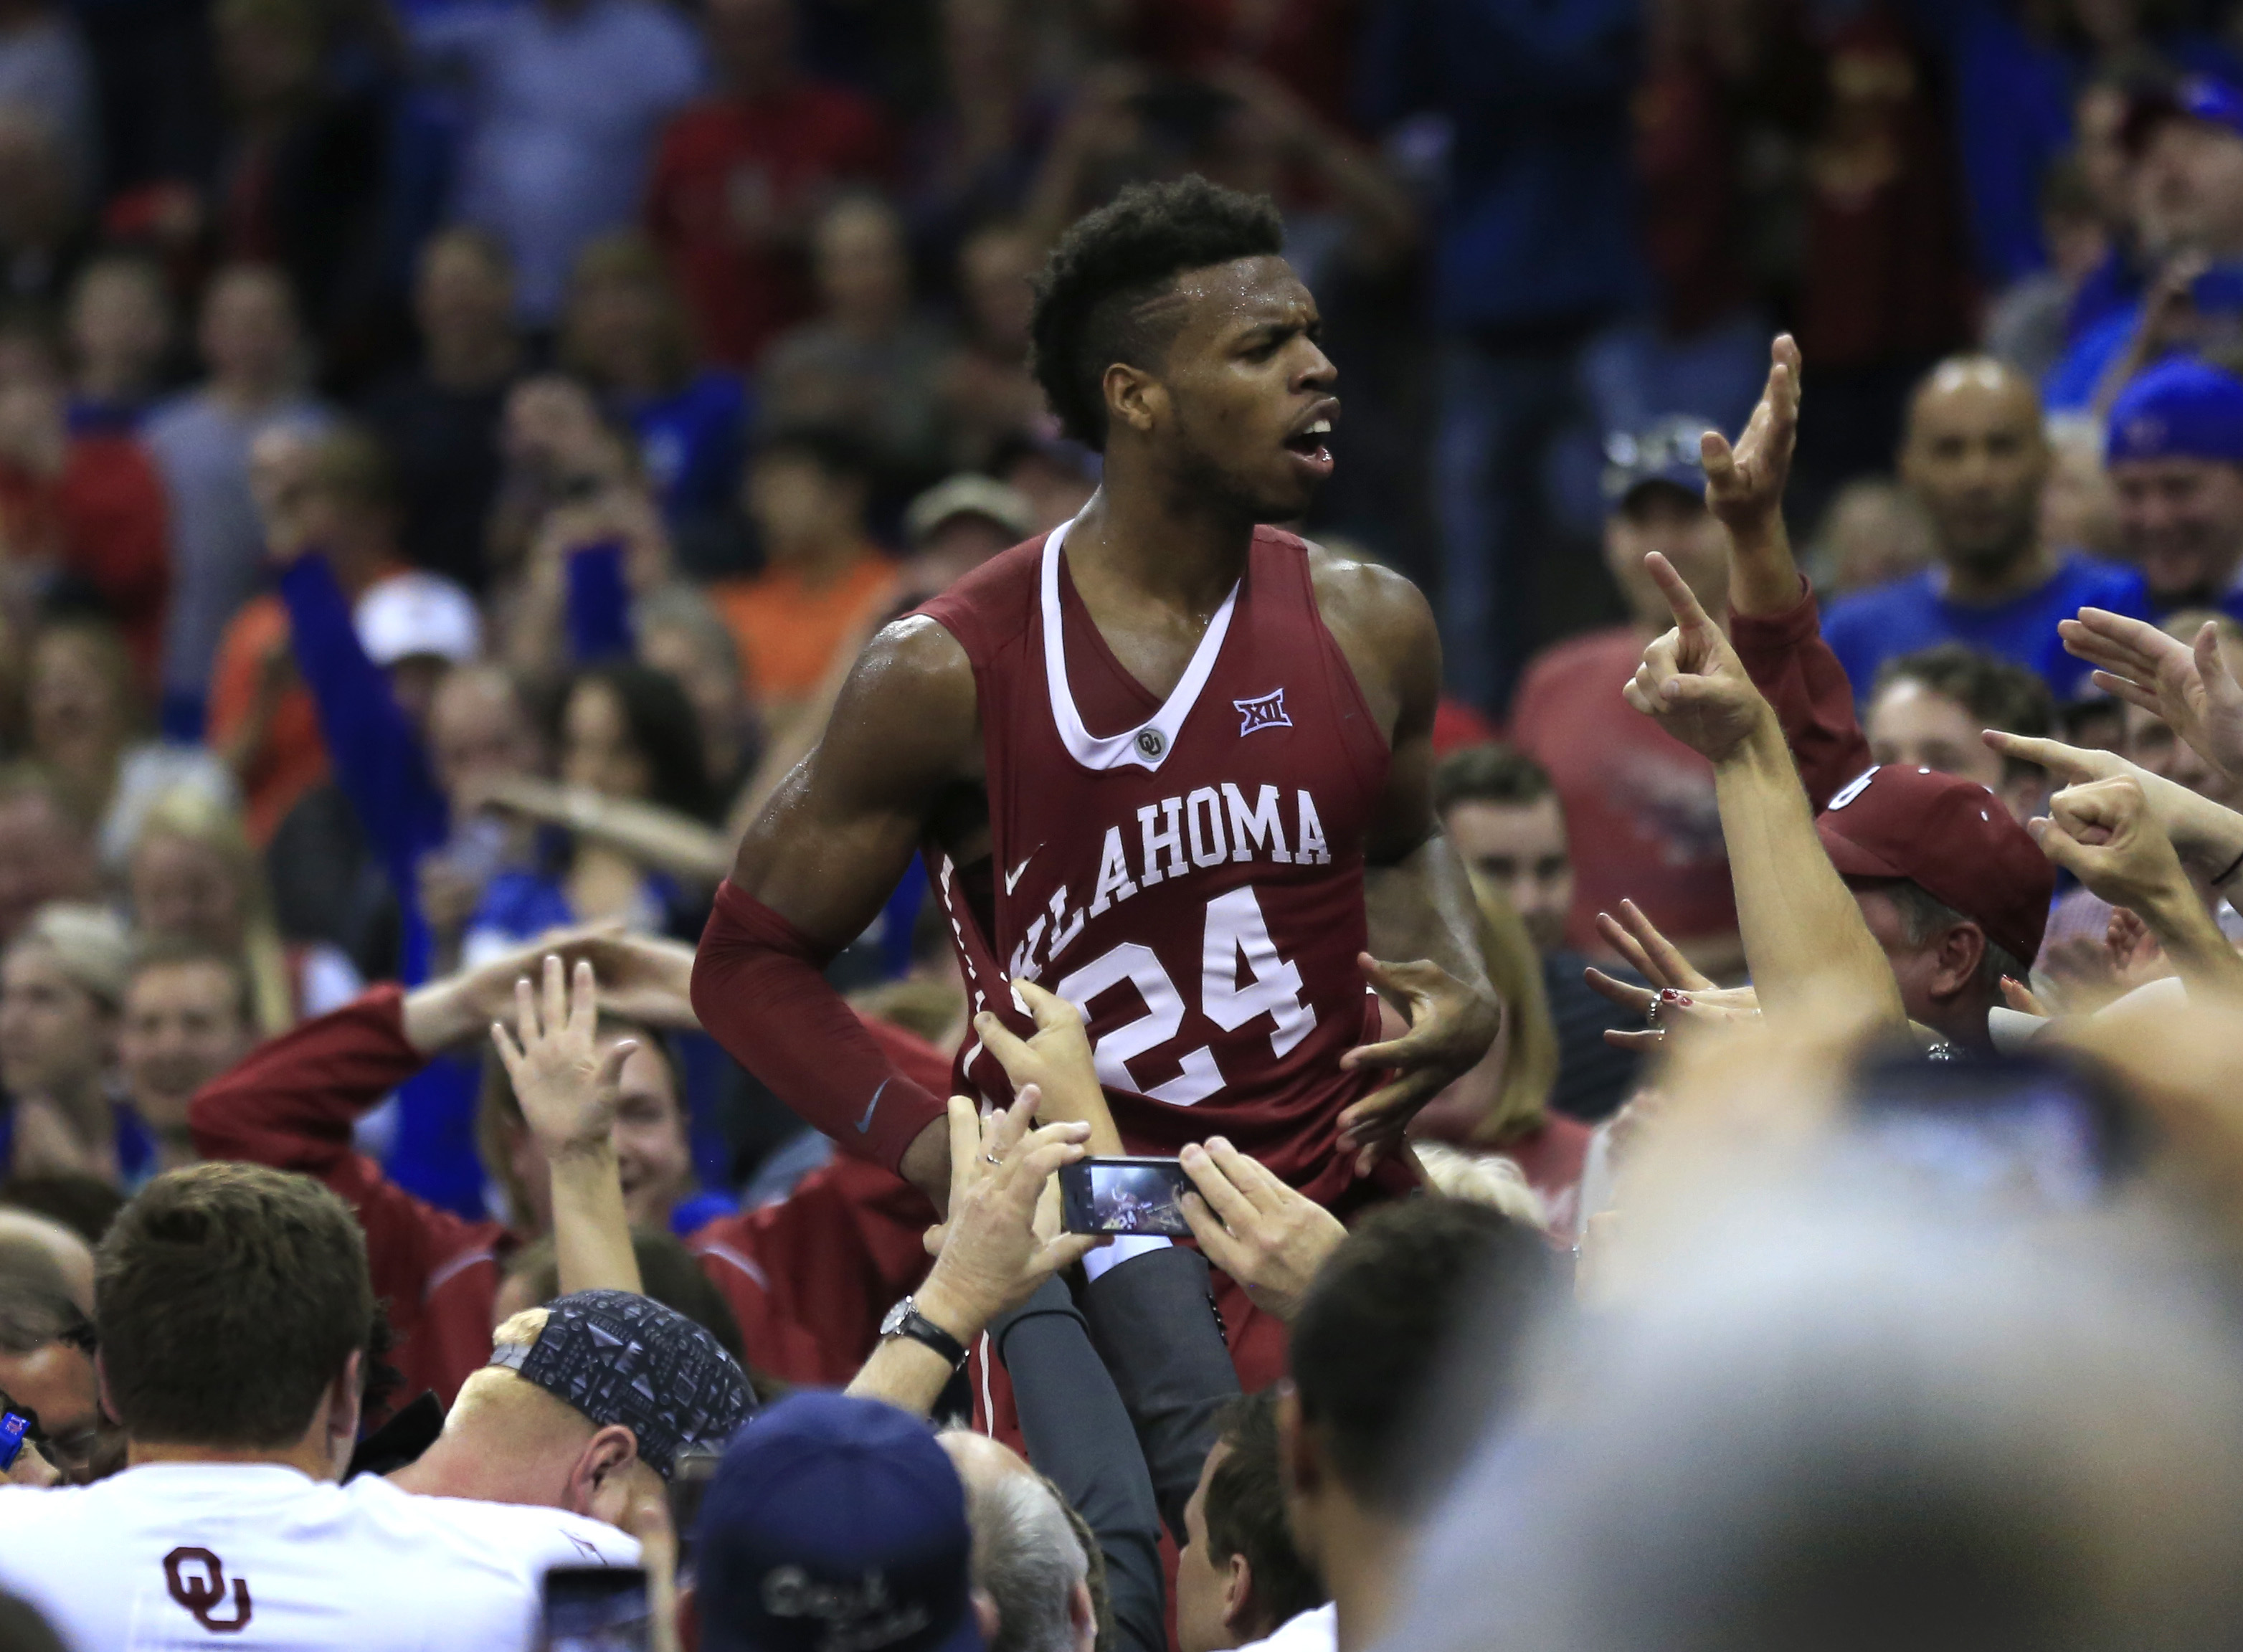 Oklahoma guard Buddy Hield (24) celebrates with fans after thinking he had scored the winning basket during NCAA college basketball game against West Virginia in the semifinals of the Big 12 conference men's tournament in Kansas City, Mo., Friday, March 1